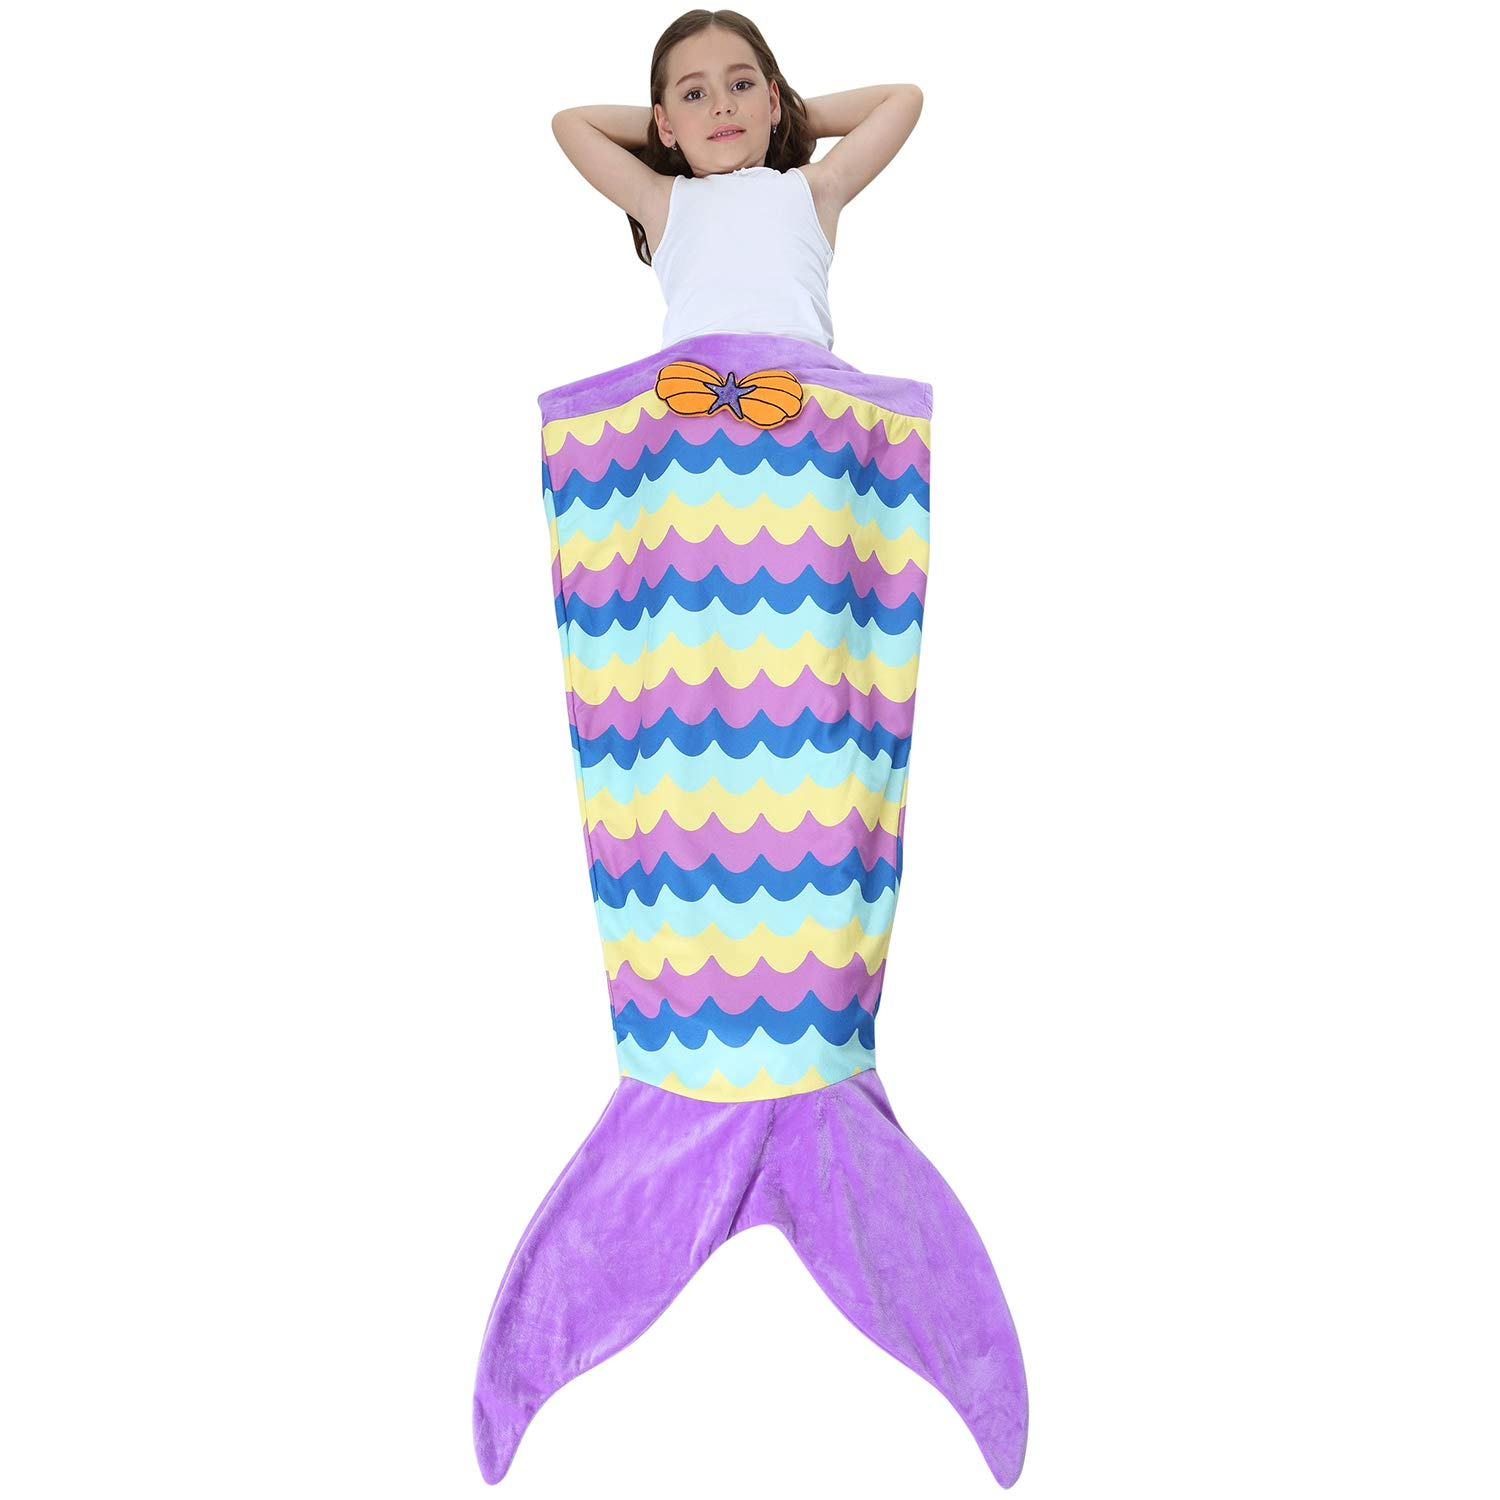 Ereon Mermaid Tail Blanket for Girls Kids Soft Plush Flannel Sleeping Bag to Keep Warm All Seasons Blanket for Girl Christmas Birthday Gift Apply to Bedroom Sofa Beach Outdoor(Purple) by Ereon (Image #7)